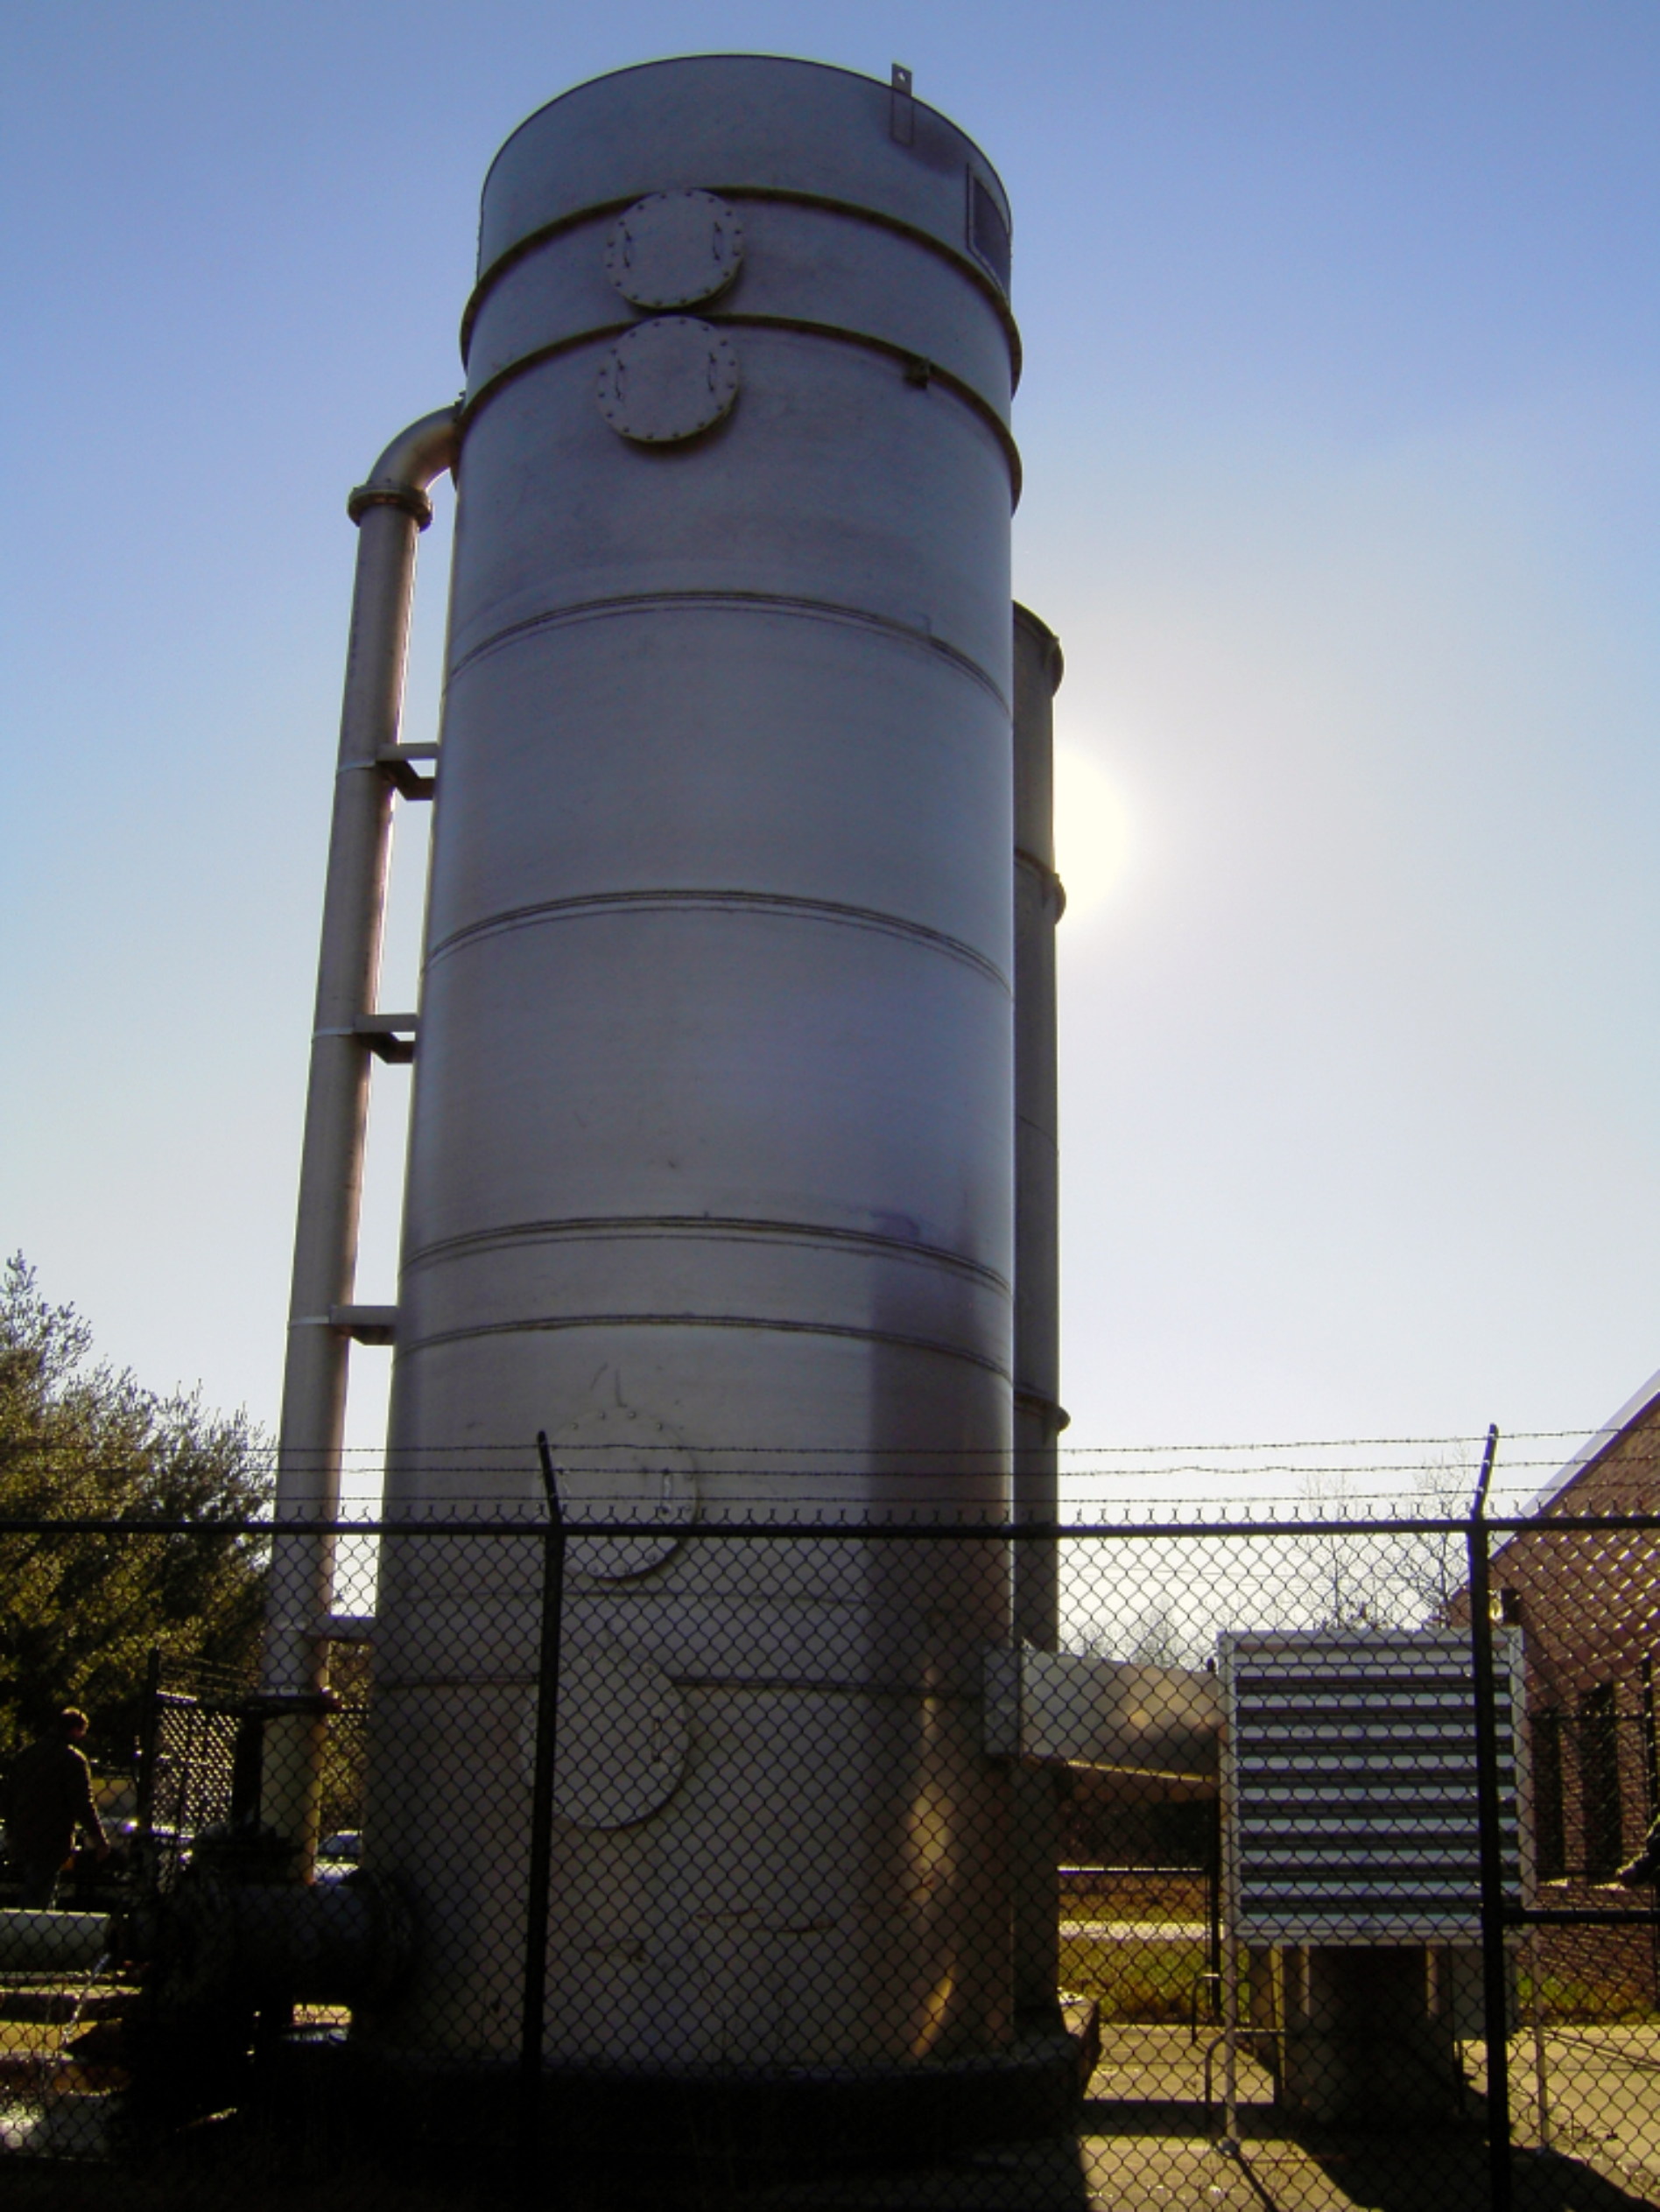 "One 10'-0"" Diameter x 30'-6"" high Silver Stainless Steel Delta Cooling air stripping tower to treat potable water at the Water Treatment Facility.  The tower is surrounded by a metal fence, next to a building with some trees to the side. The background has blue skies with no clouds."